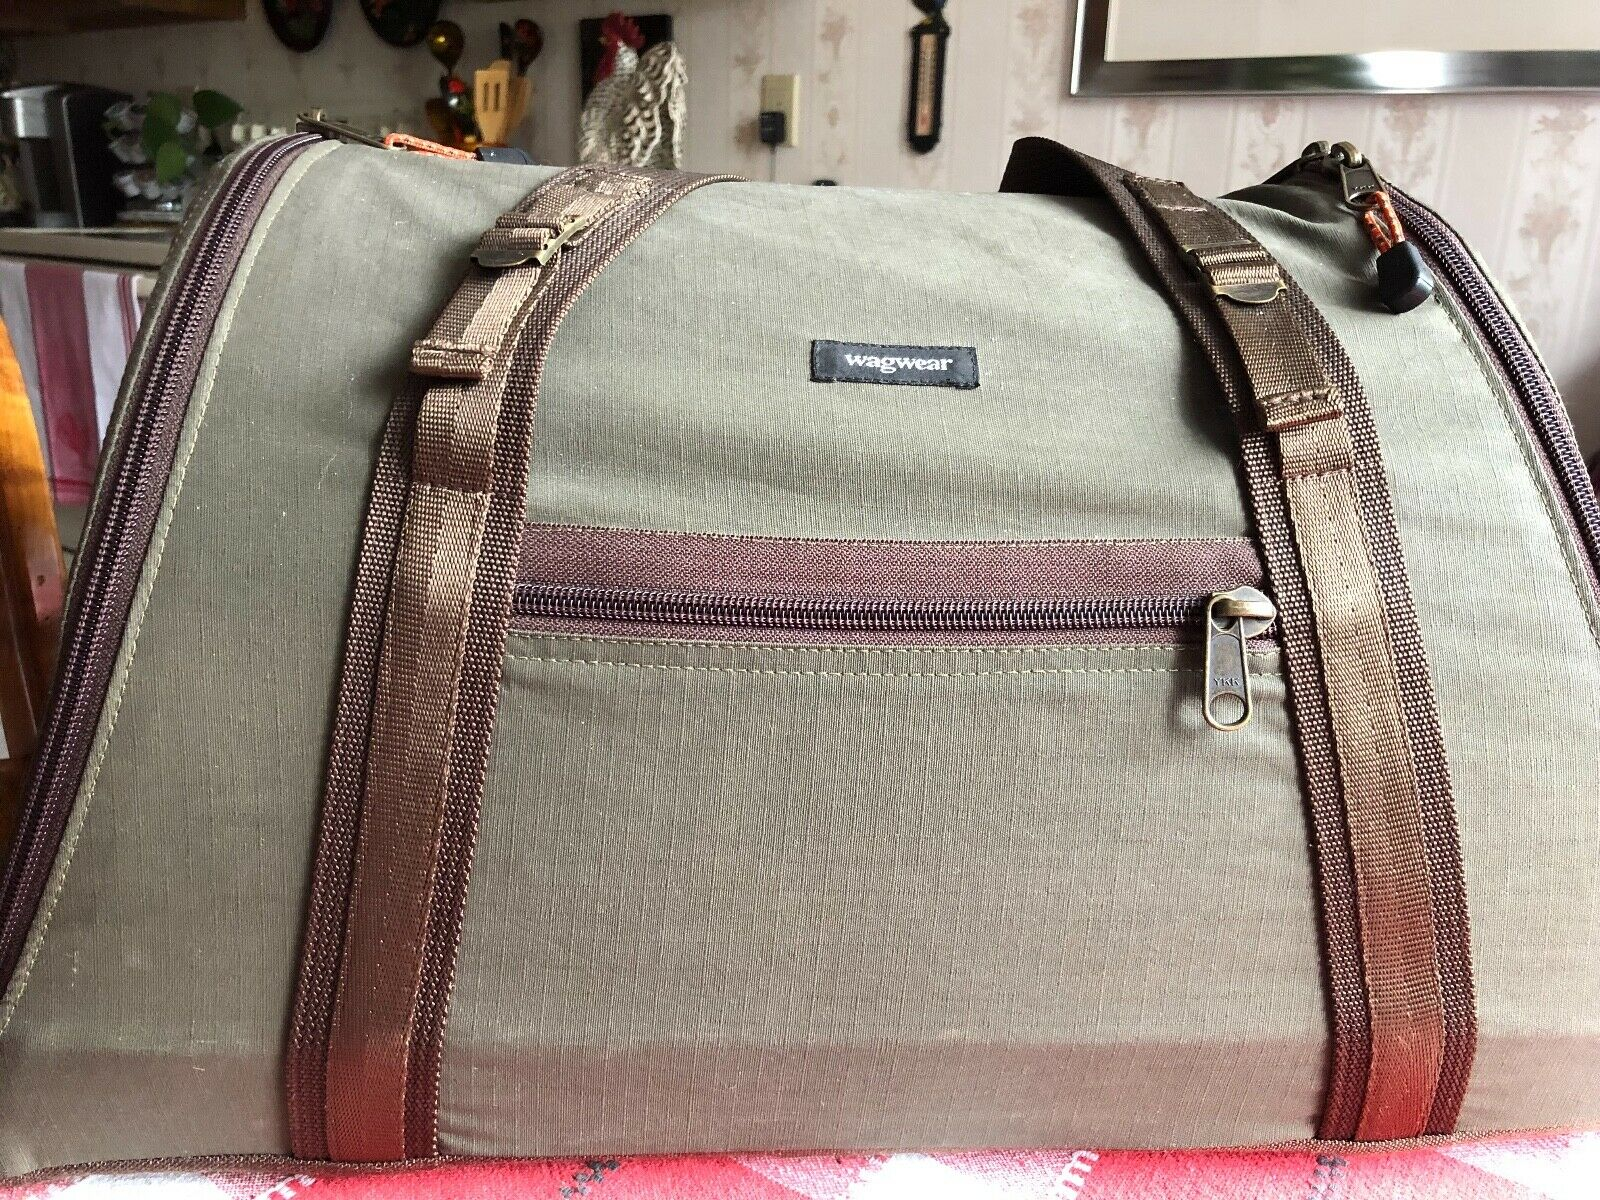 WAGWEAR COTTON RIPSTOP PET CARRIER AIRLINE APPROVED VERY GOOD CONDITION